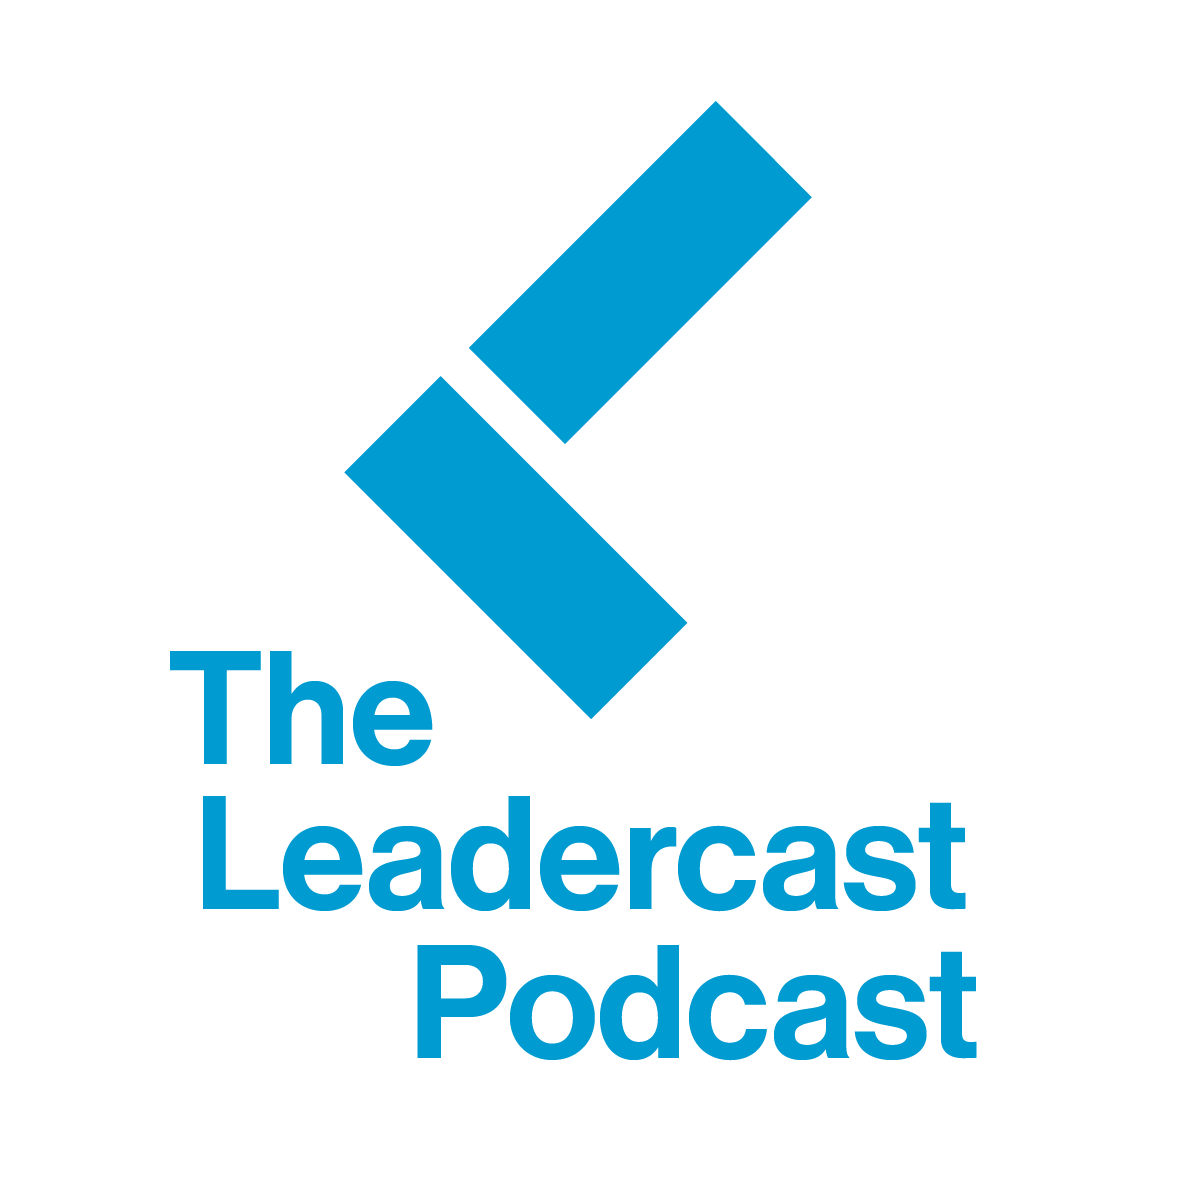 The Leadercast Podcast show art